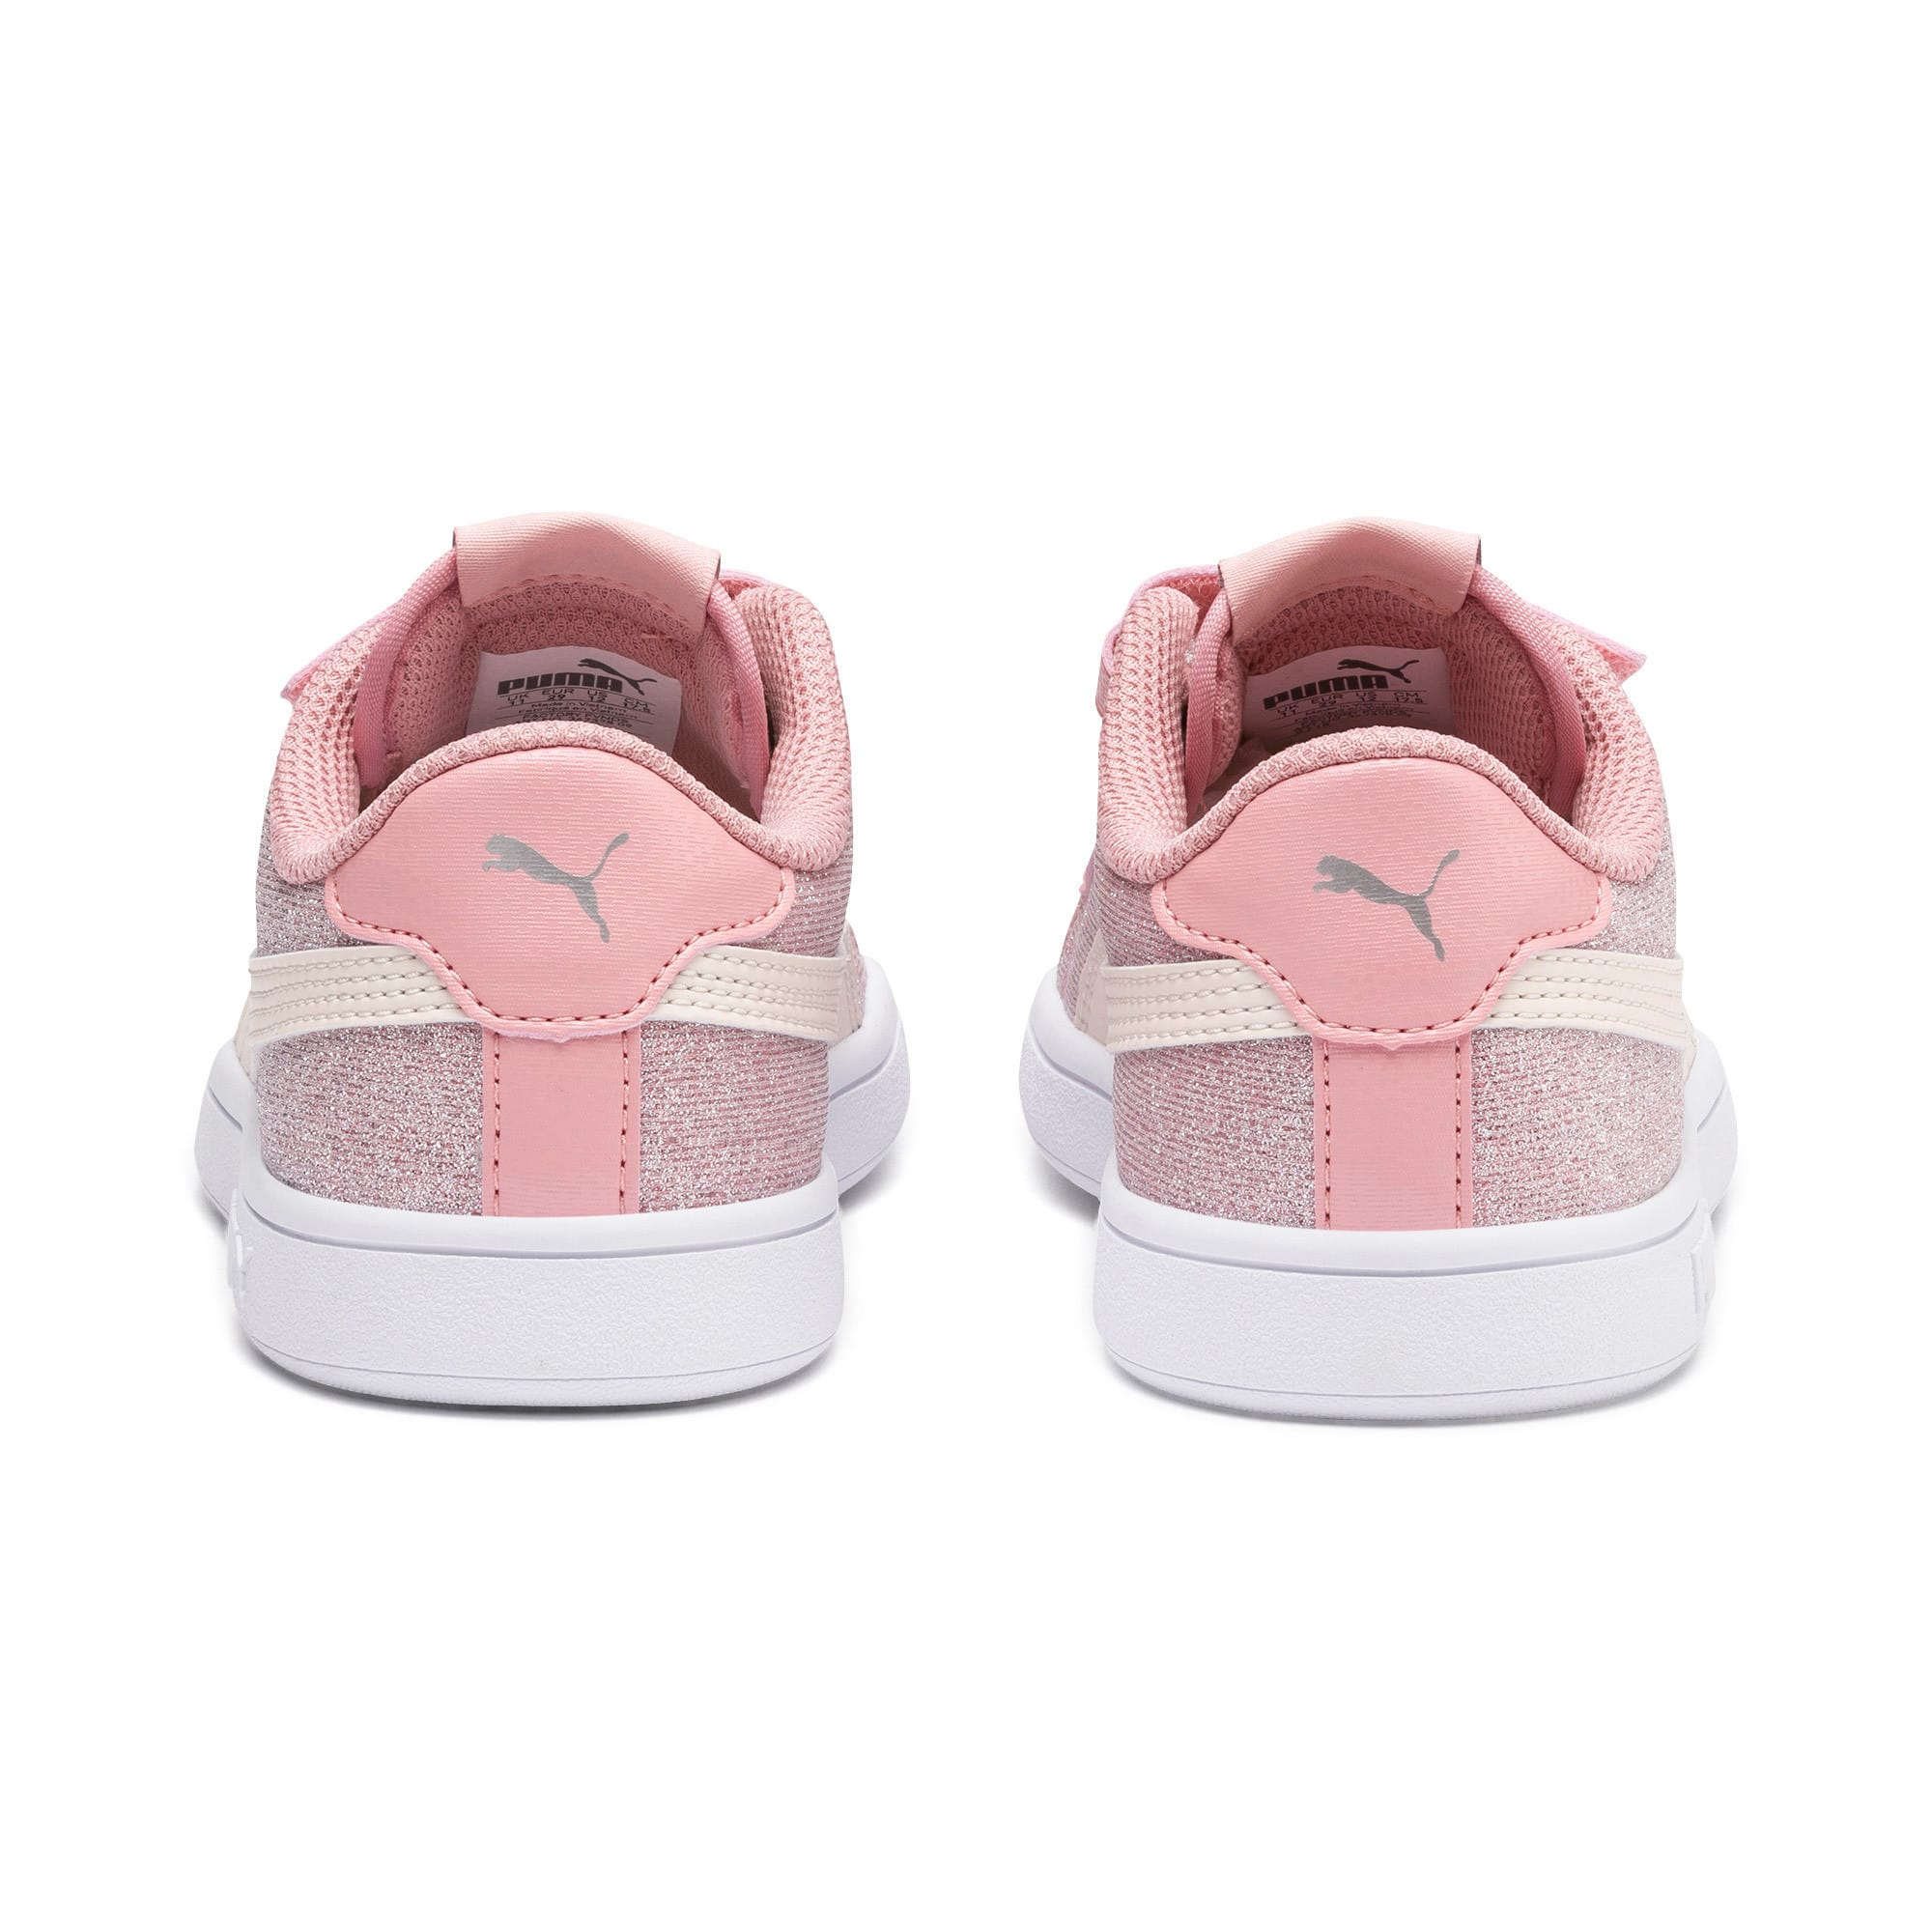 Thumbnail 3 of PUMA Smash v2 Glitz Glam Kid Girls' Trainers, B Rose-P Parchment-Silv-Wht, medium